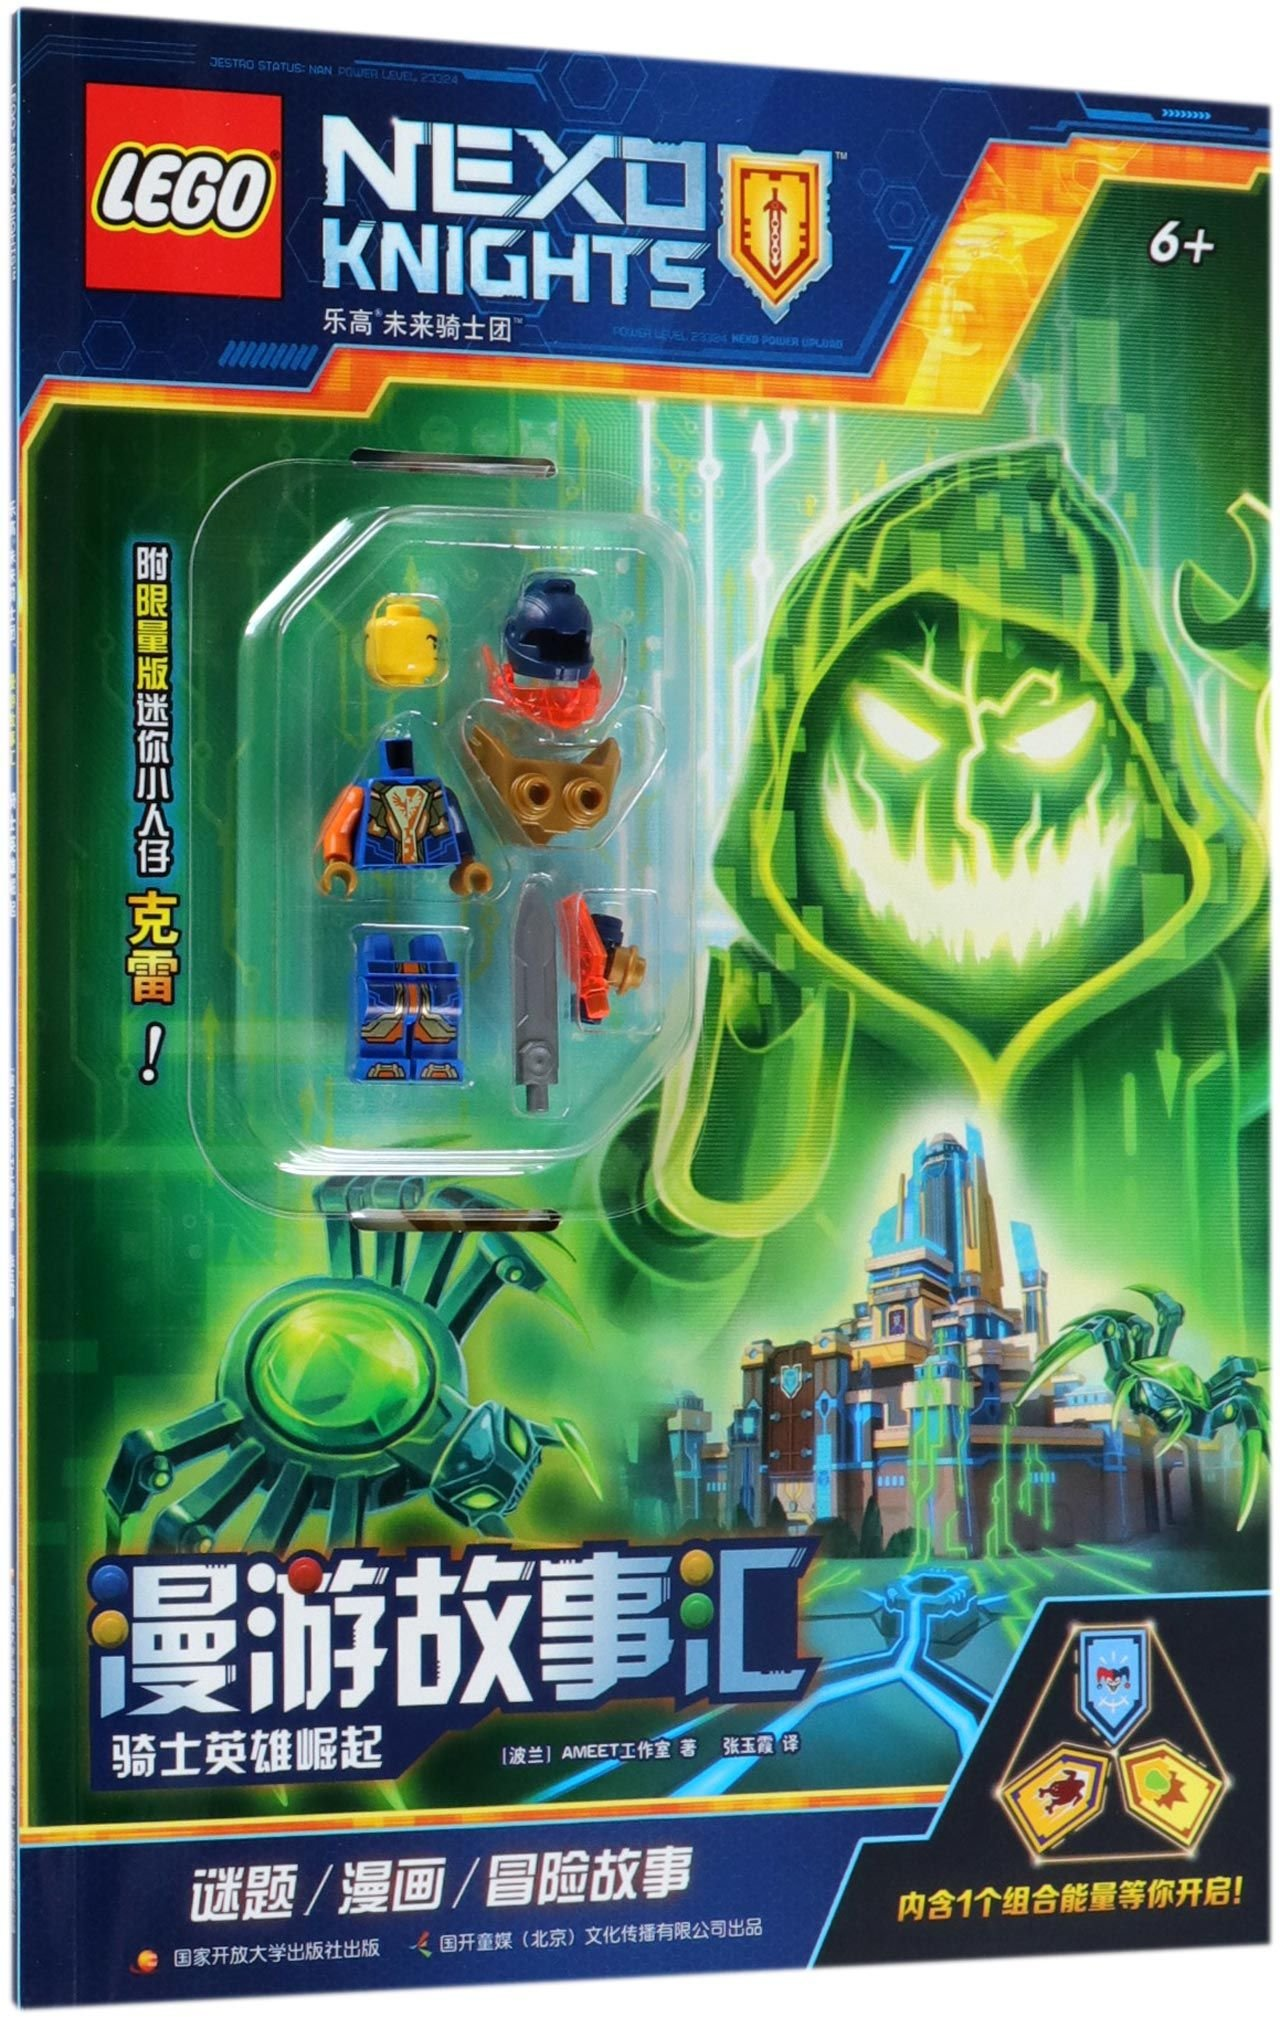 Lego Nexo Knights (6+) (Chinese Edition)